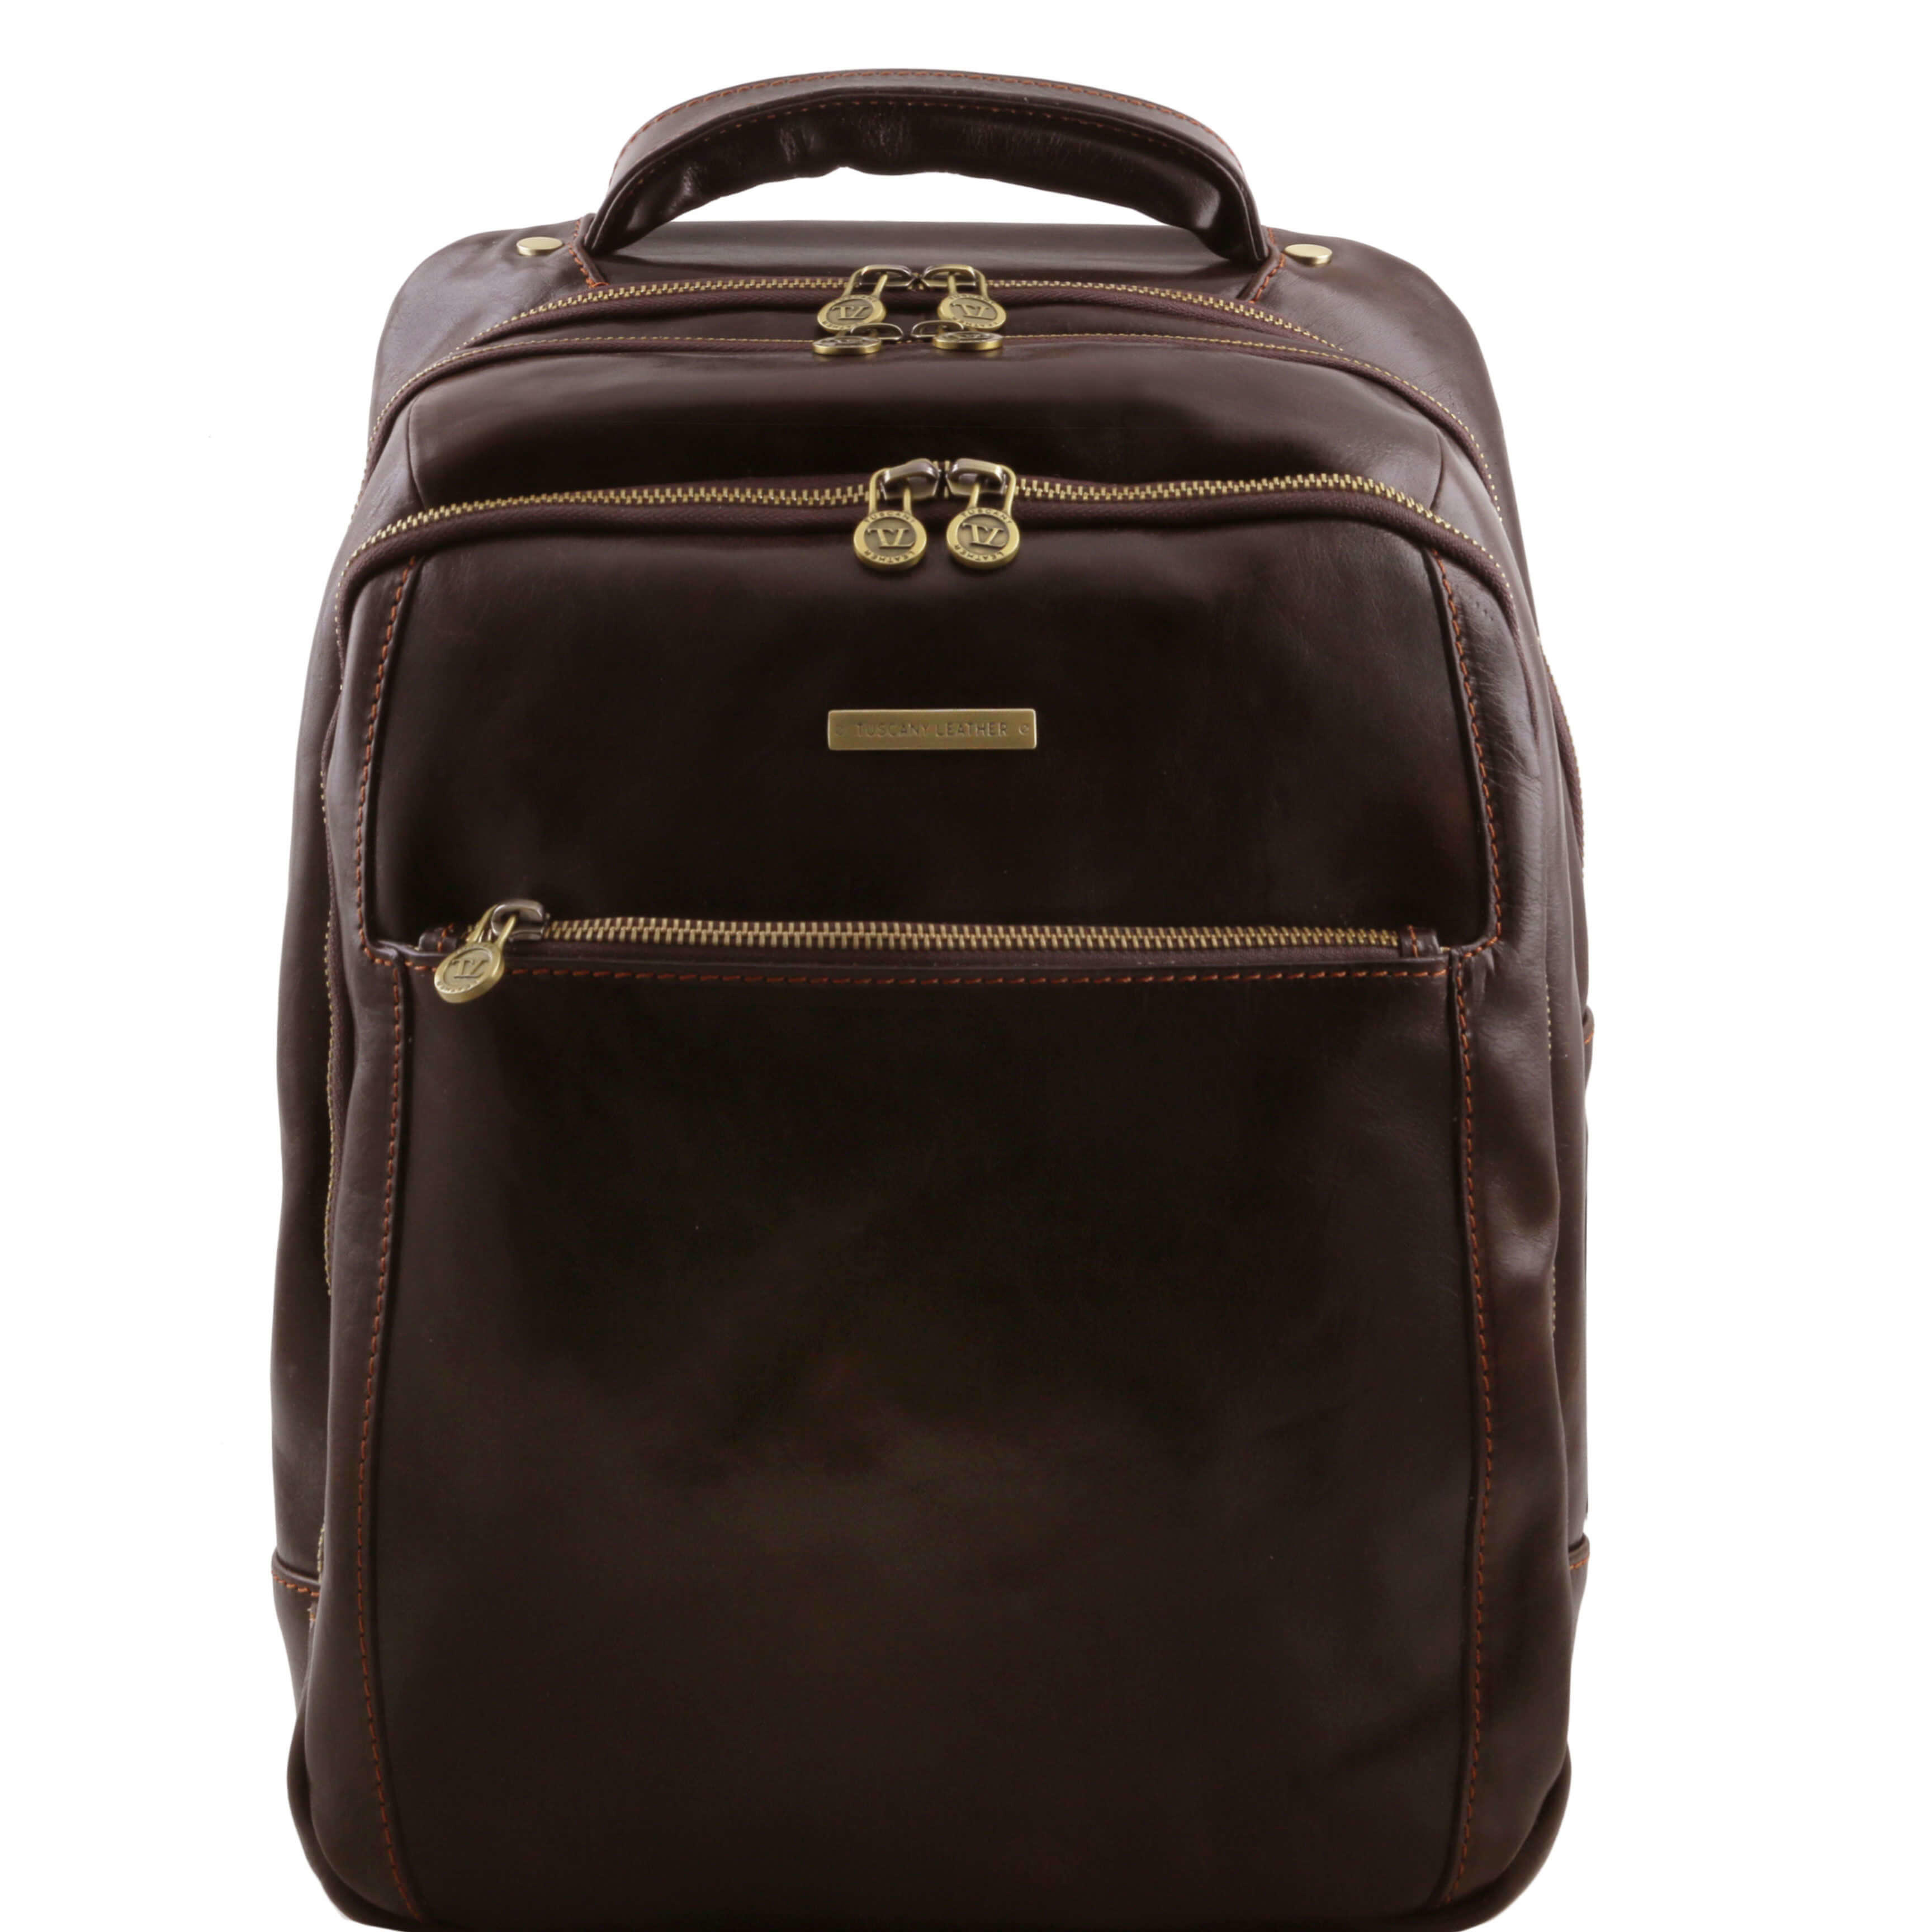 TL141402 Phuket Leather Backpack-Rucksack-Holdall-Bag 3 Compartments in Dark Brown